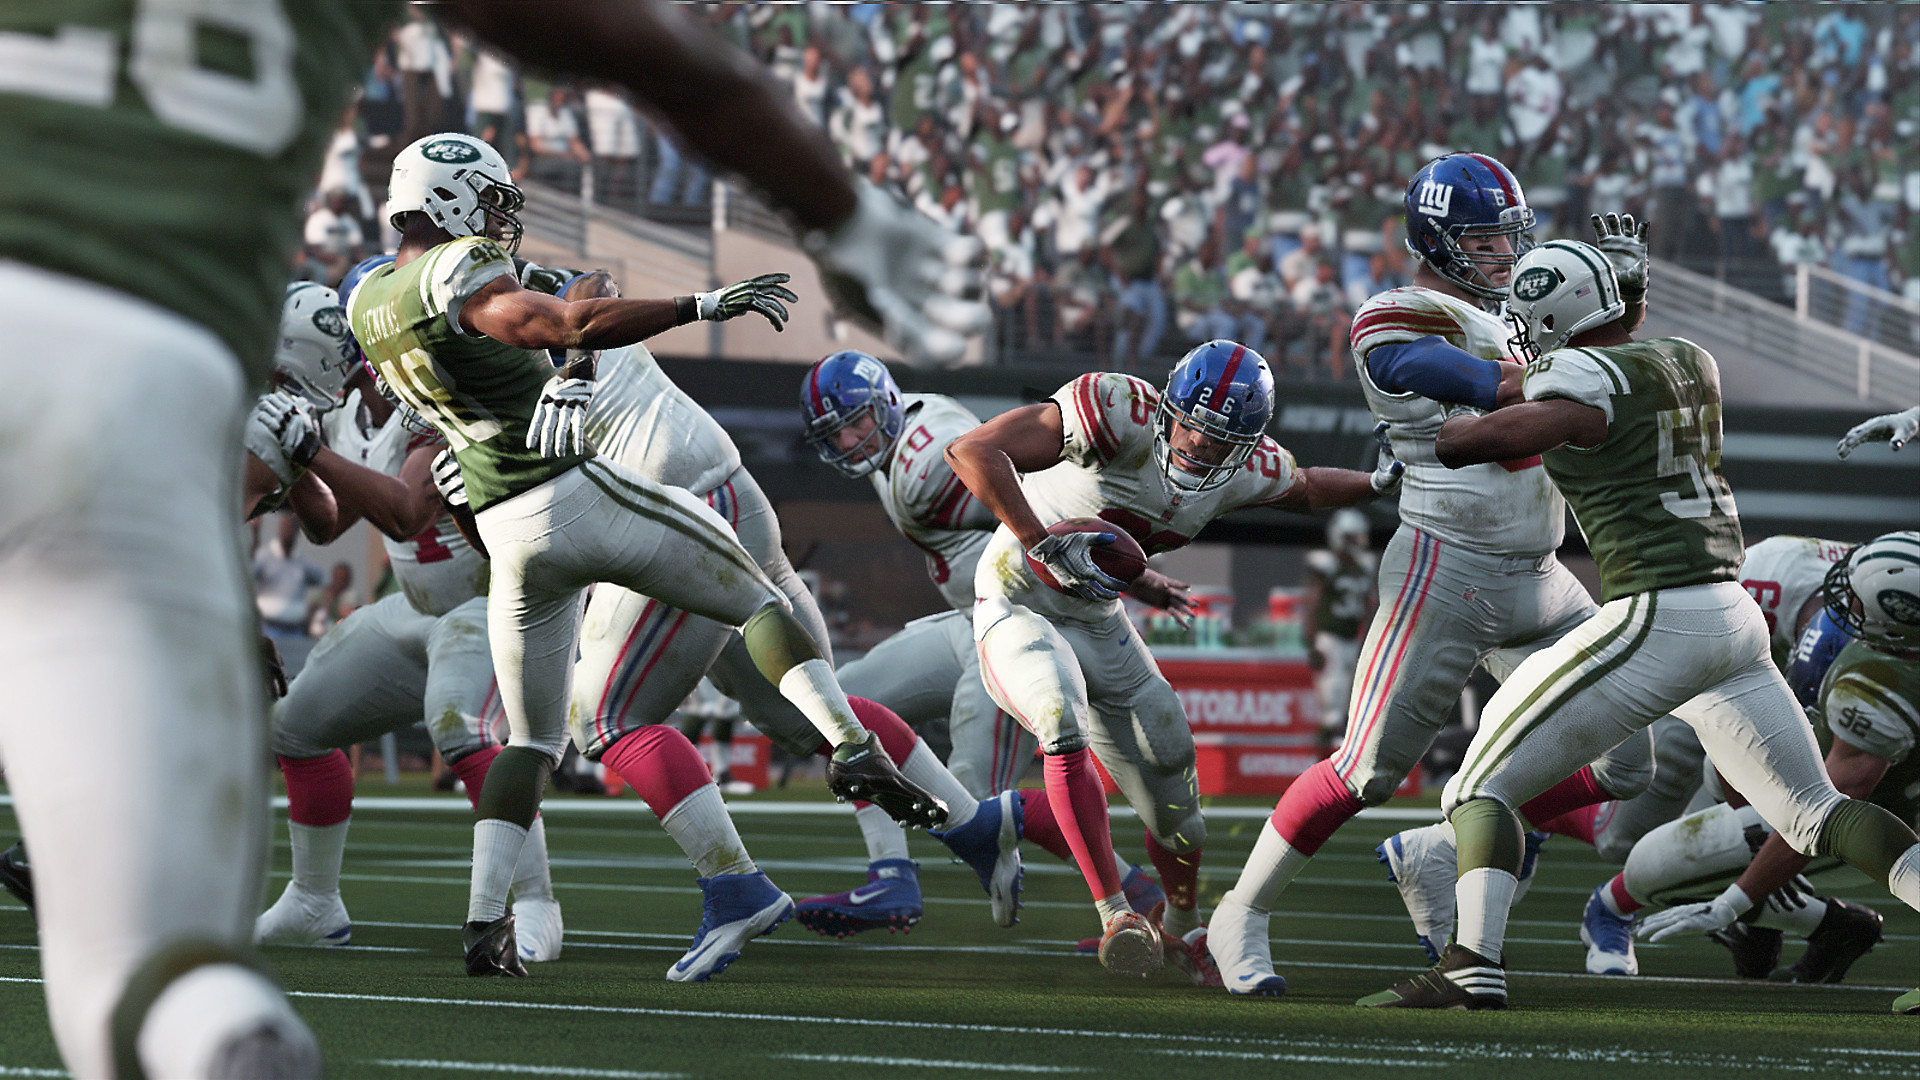 Madden NFL 19 Gameplay Screenshot - Ready to run with the ball while players collide